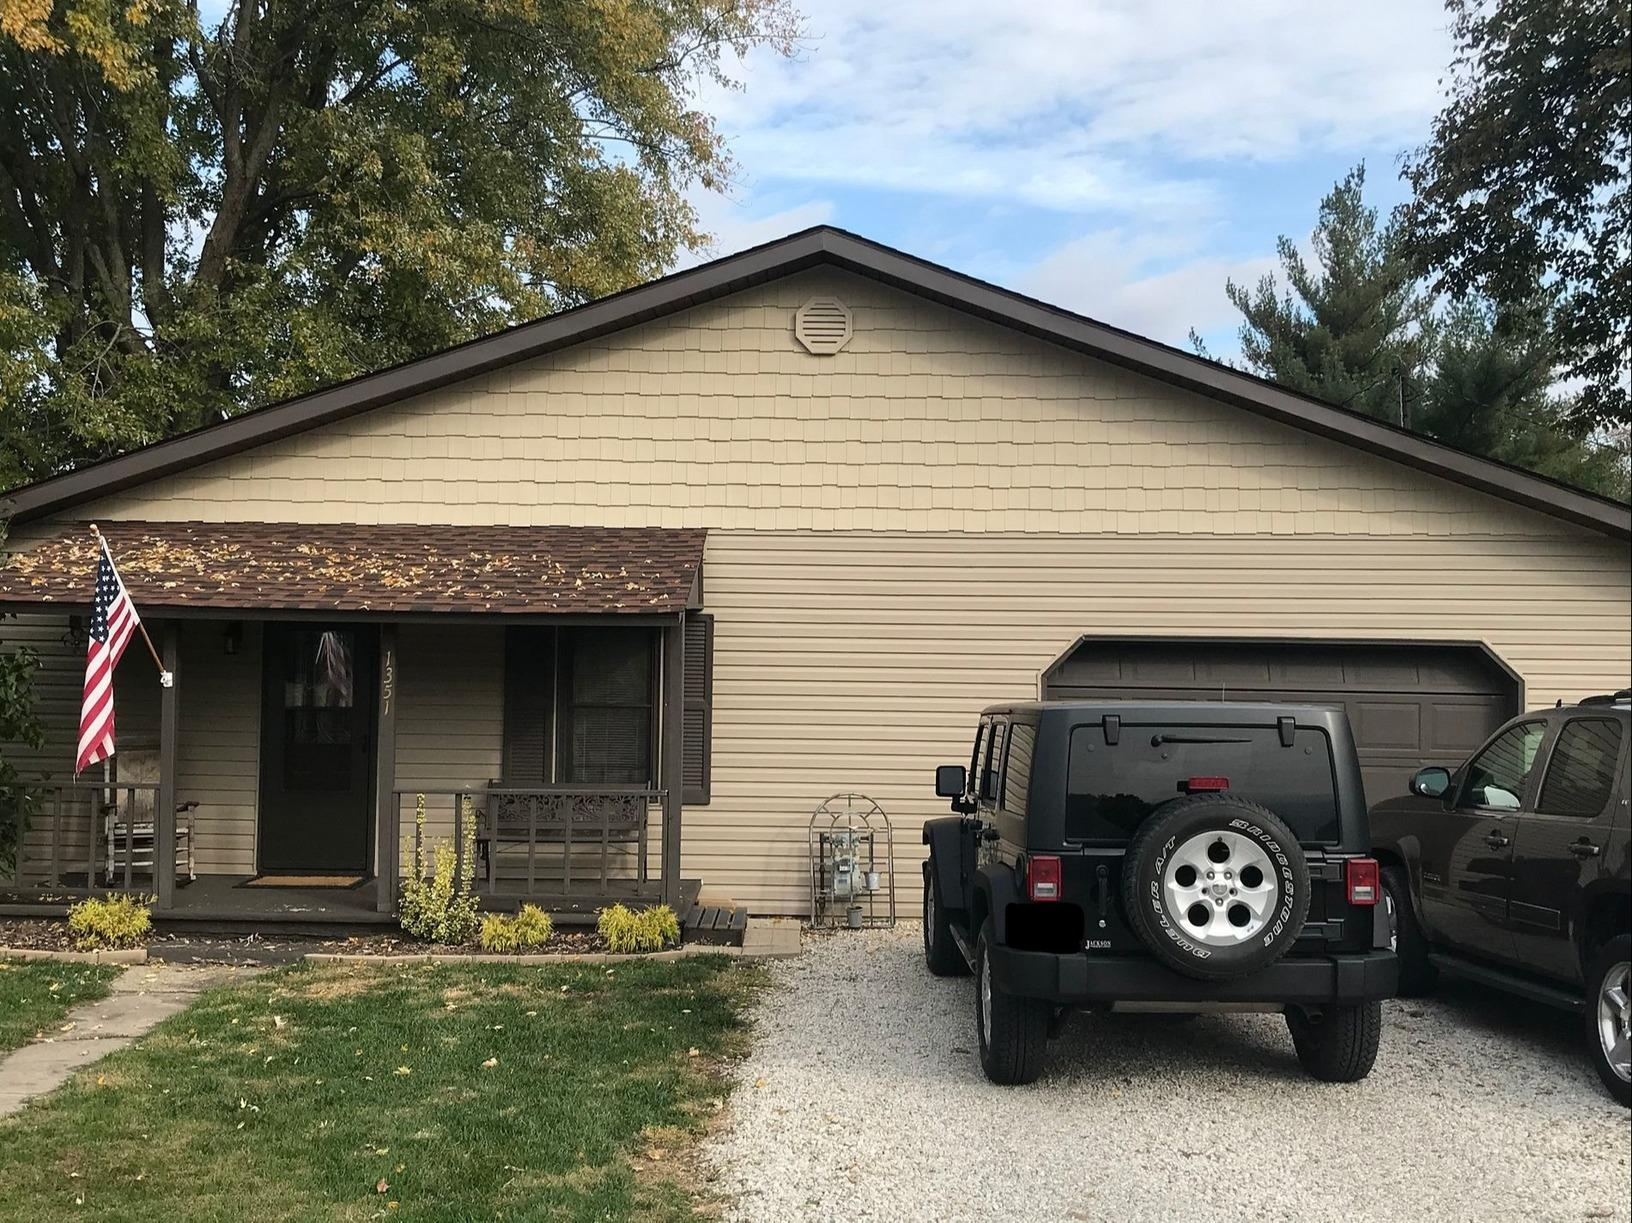 Full Roof & Siding Replacement - After Photo